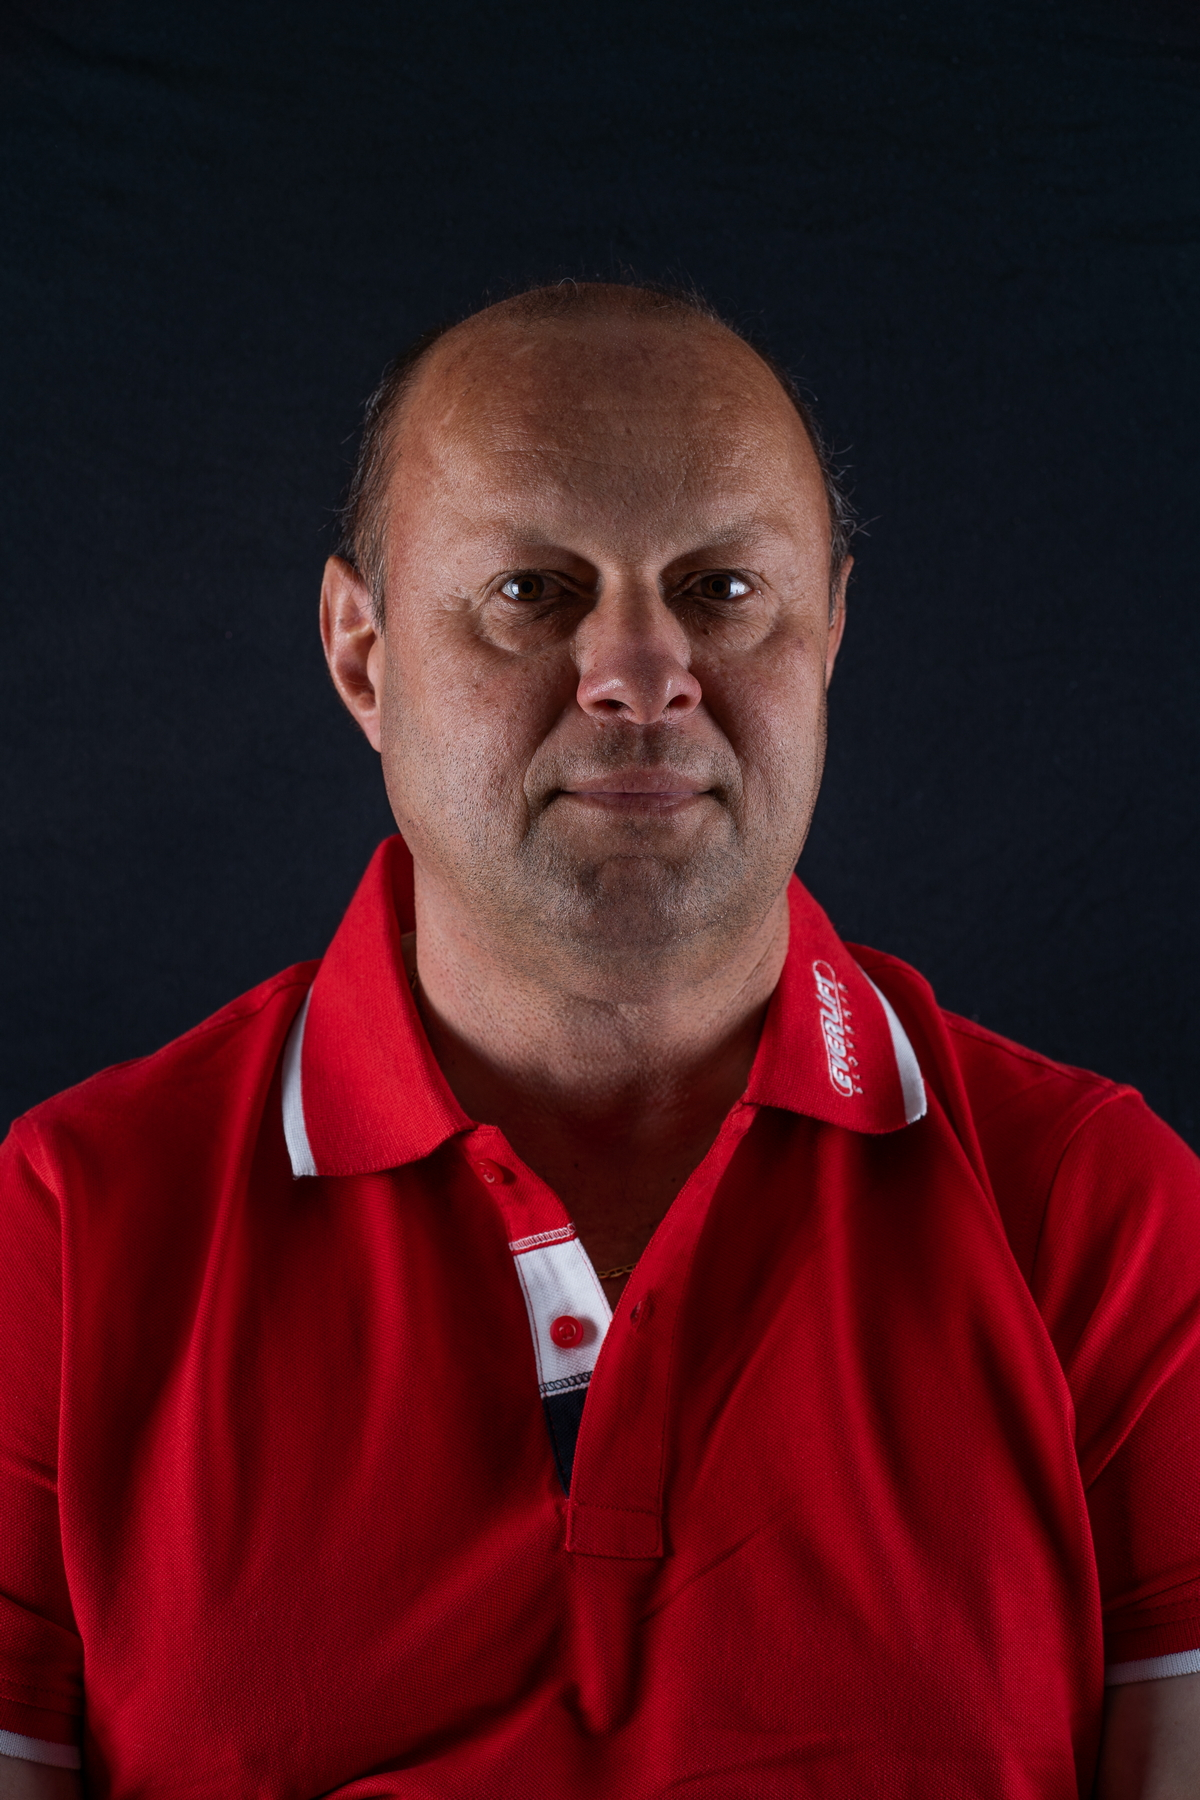 Peter Michalko